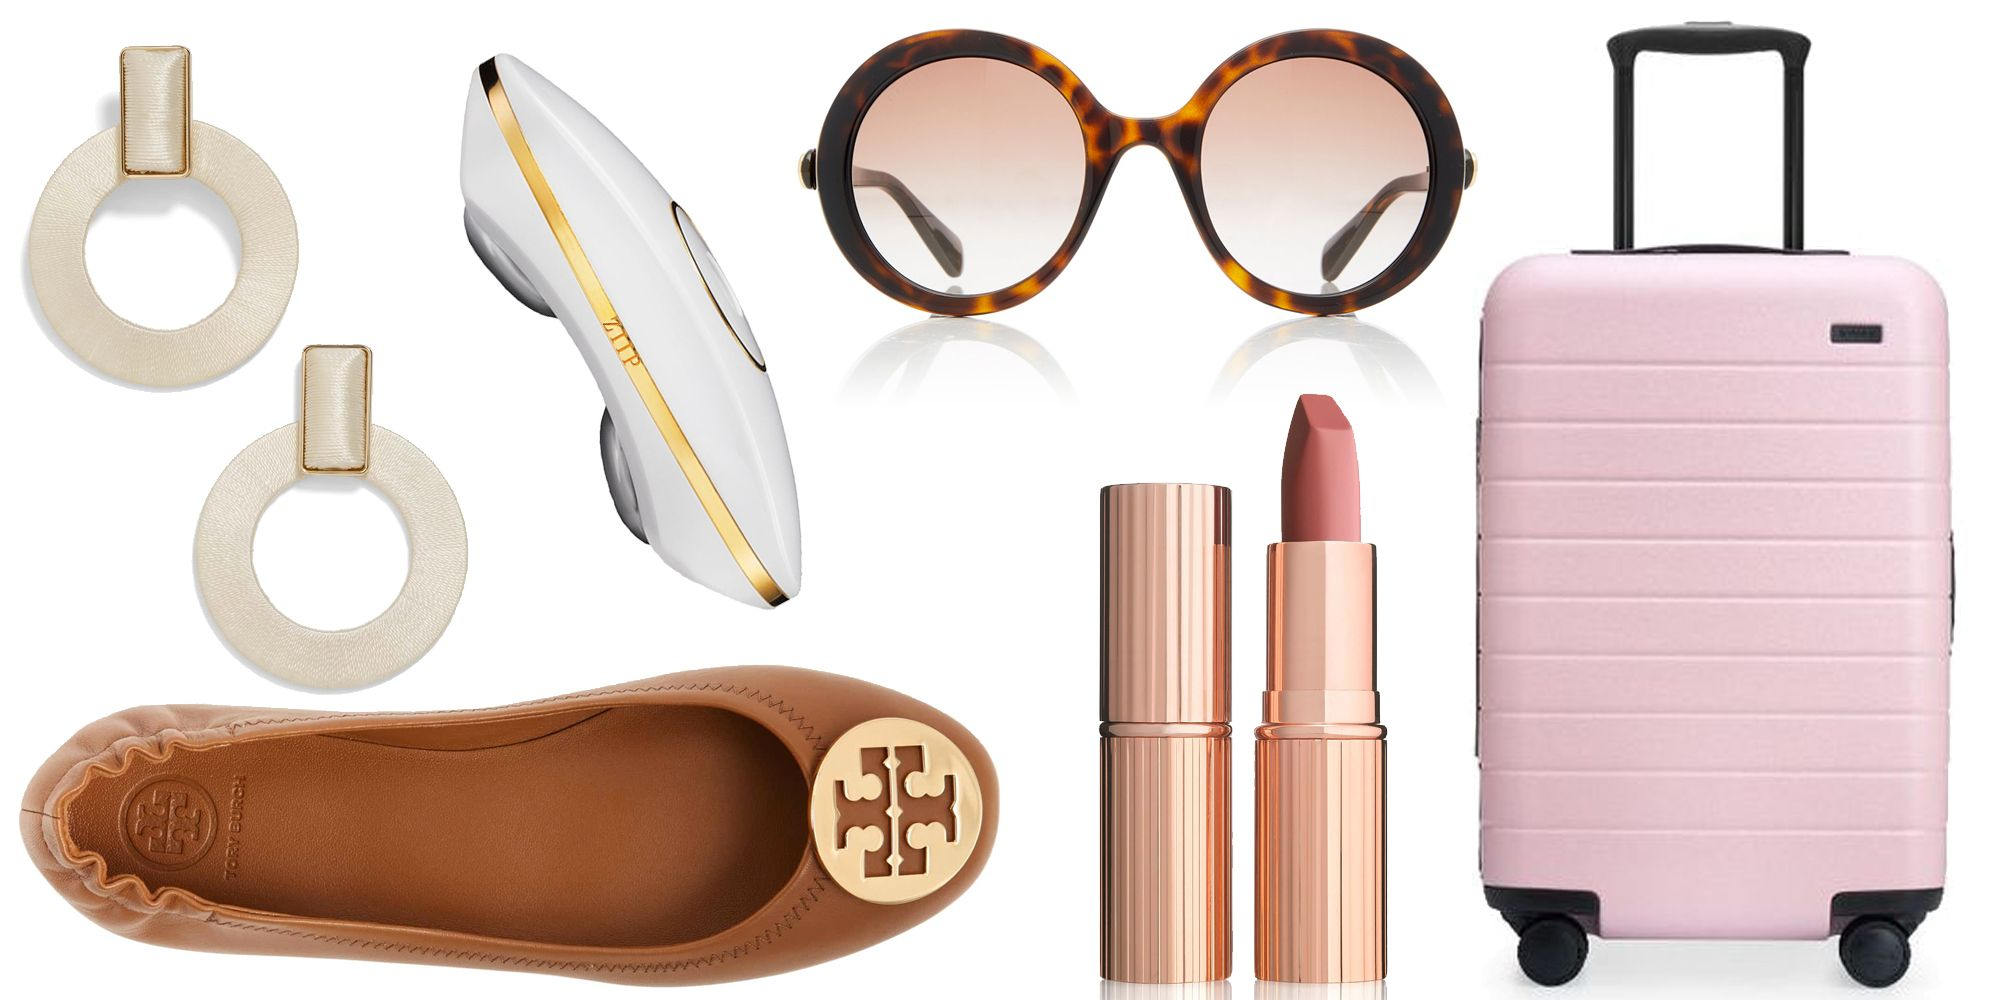 image & 30+ Best Gifts for Women 2019 - Stylish and Unique Gift Ideas for Women